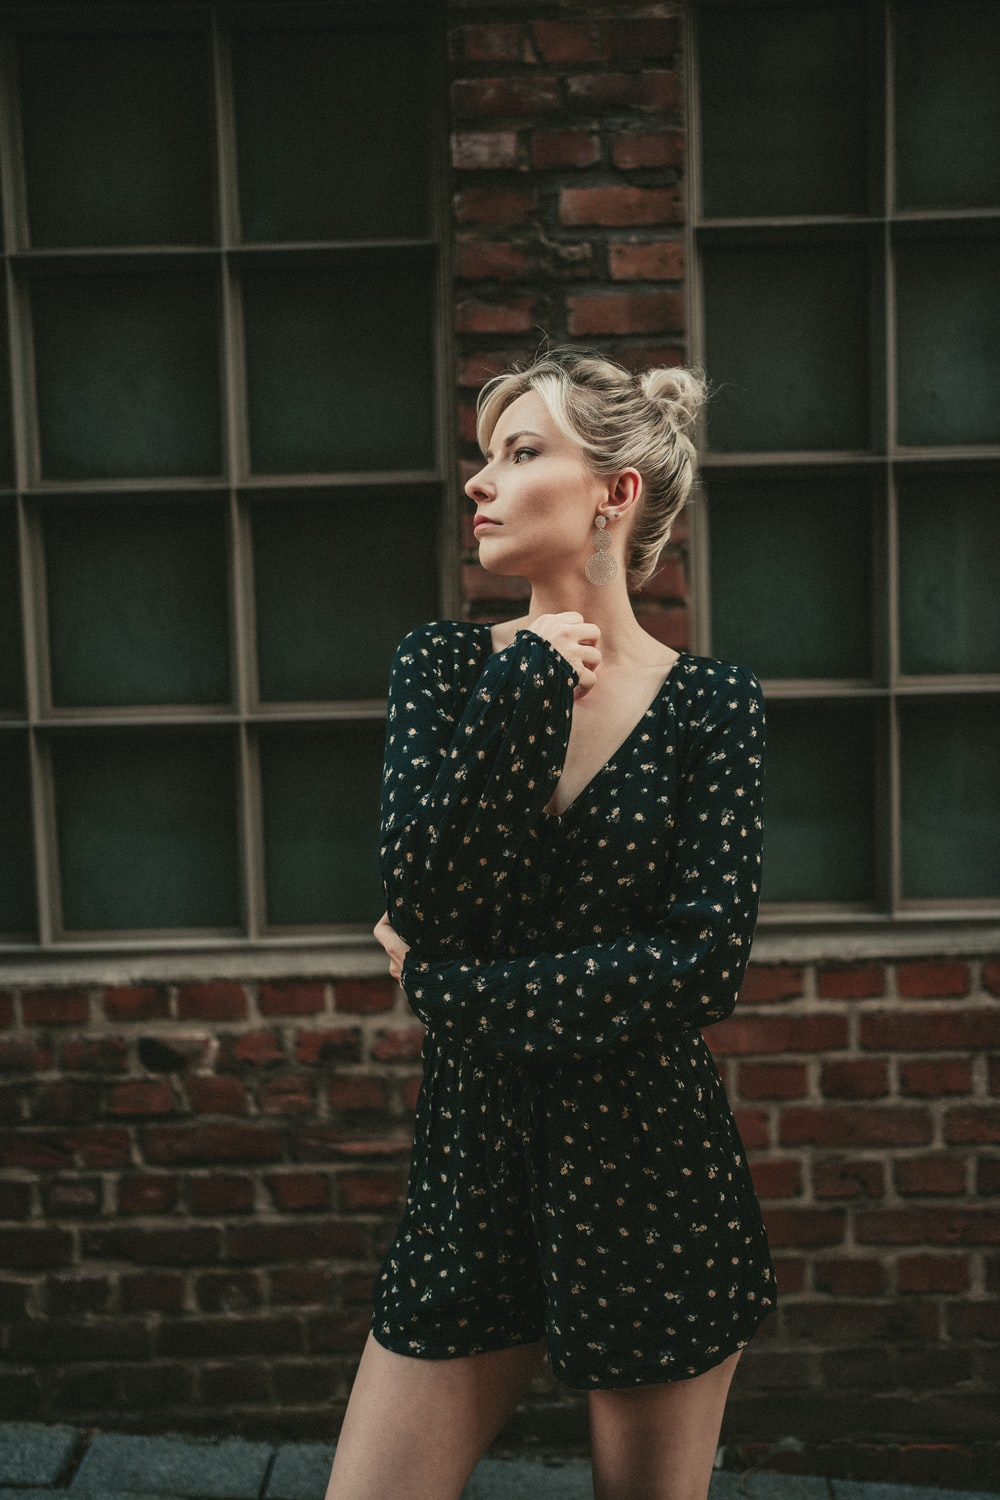 woman in black and white polka dot long sleeve dress standing near brown brick wall